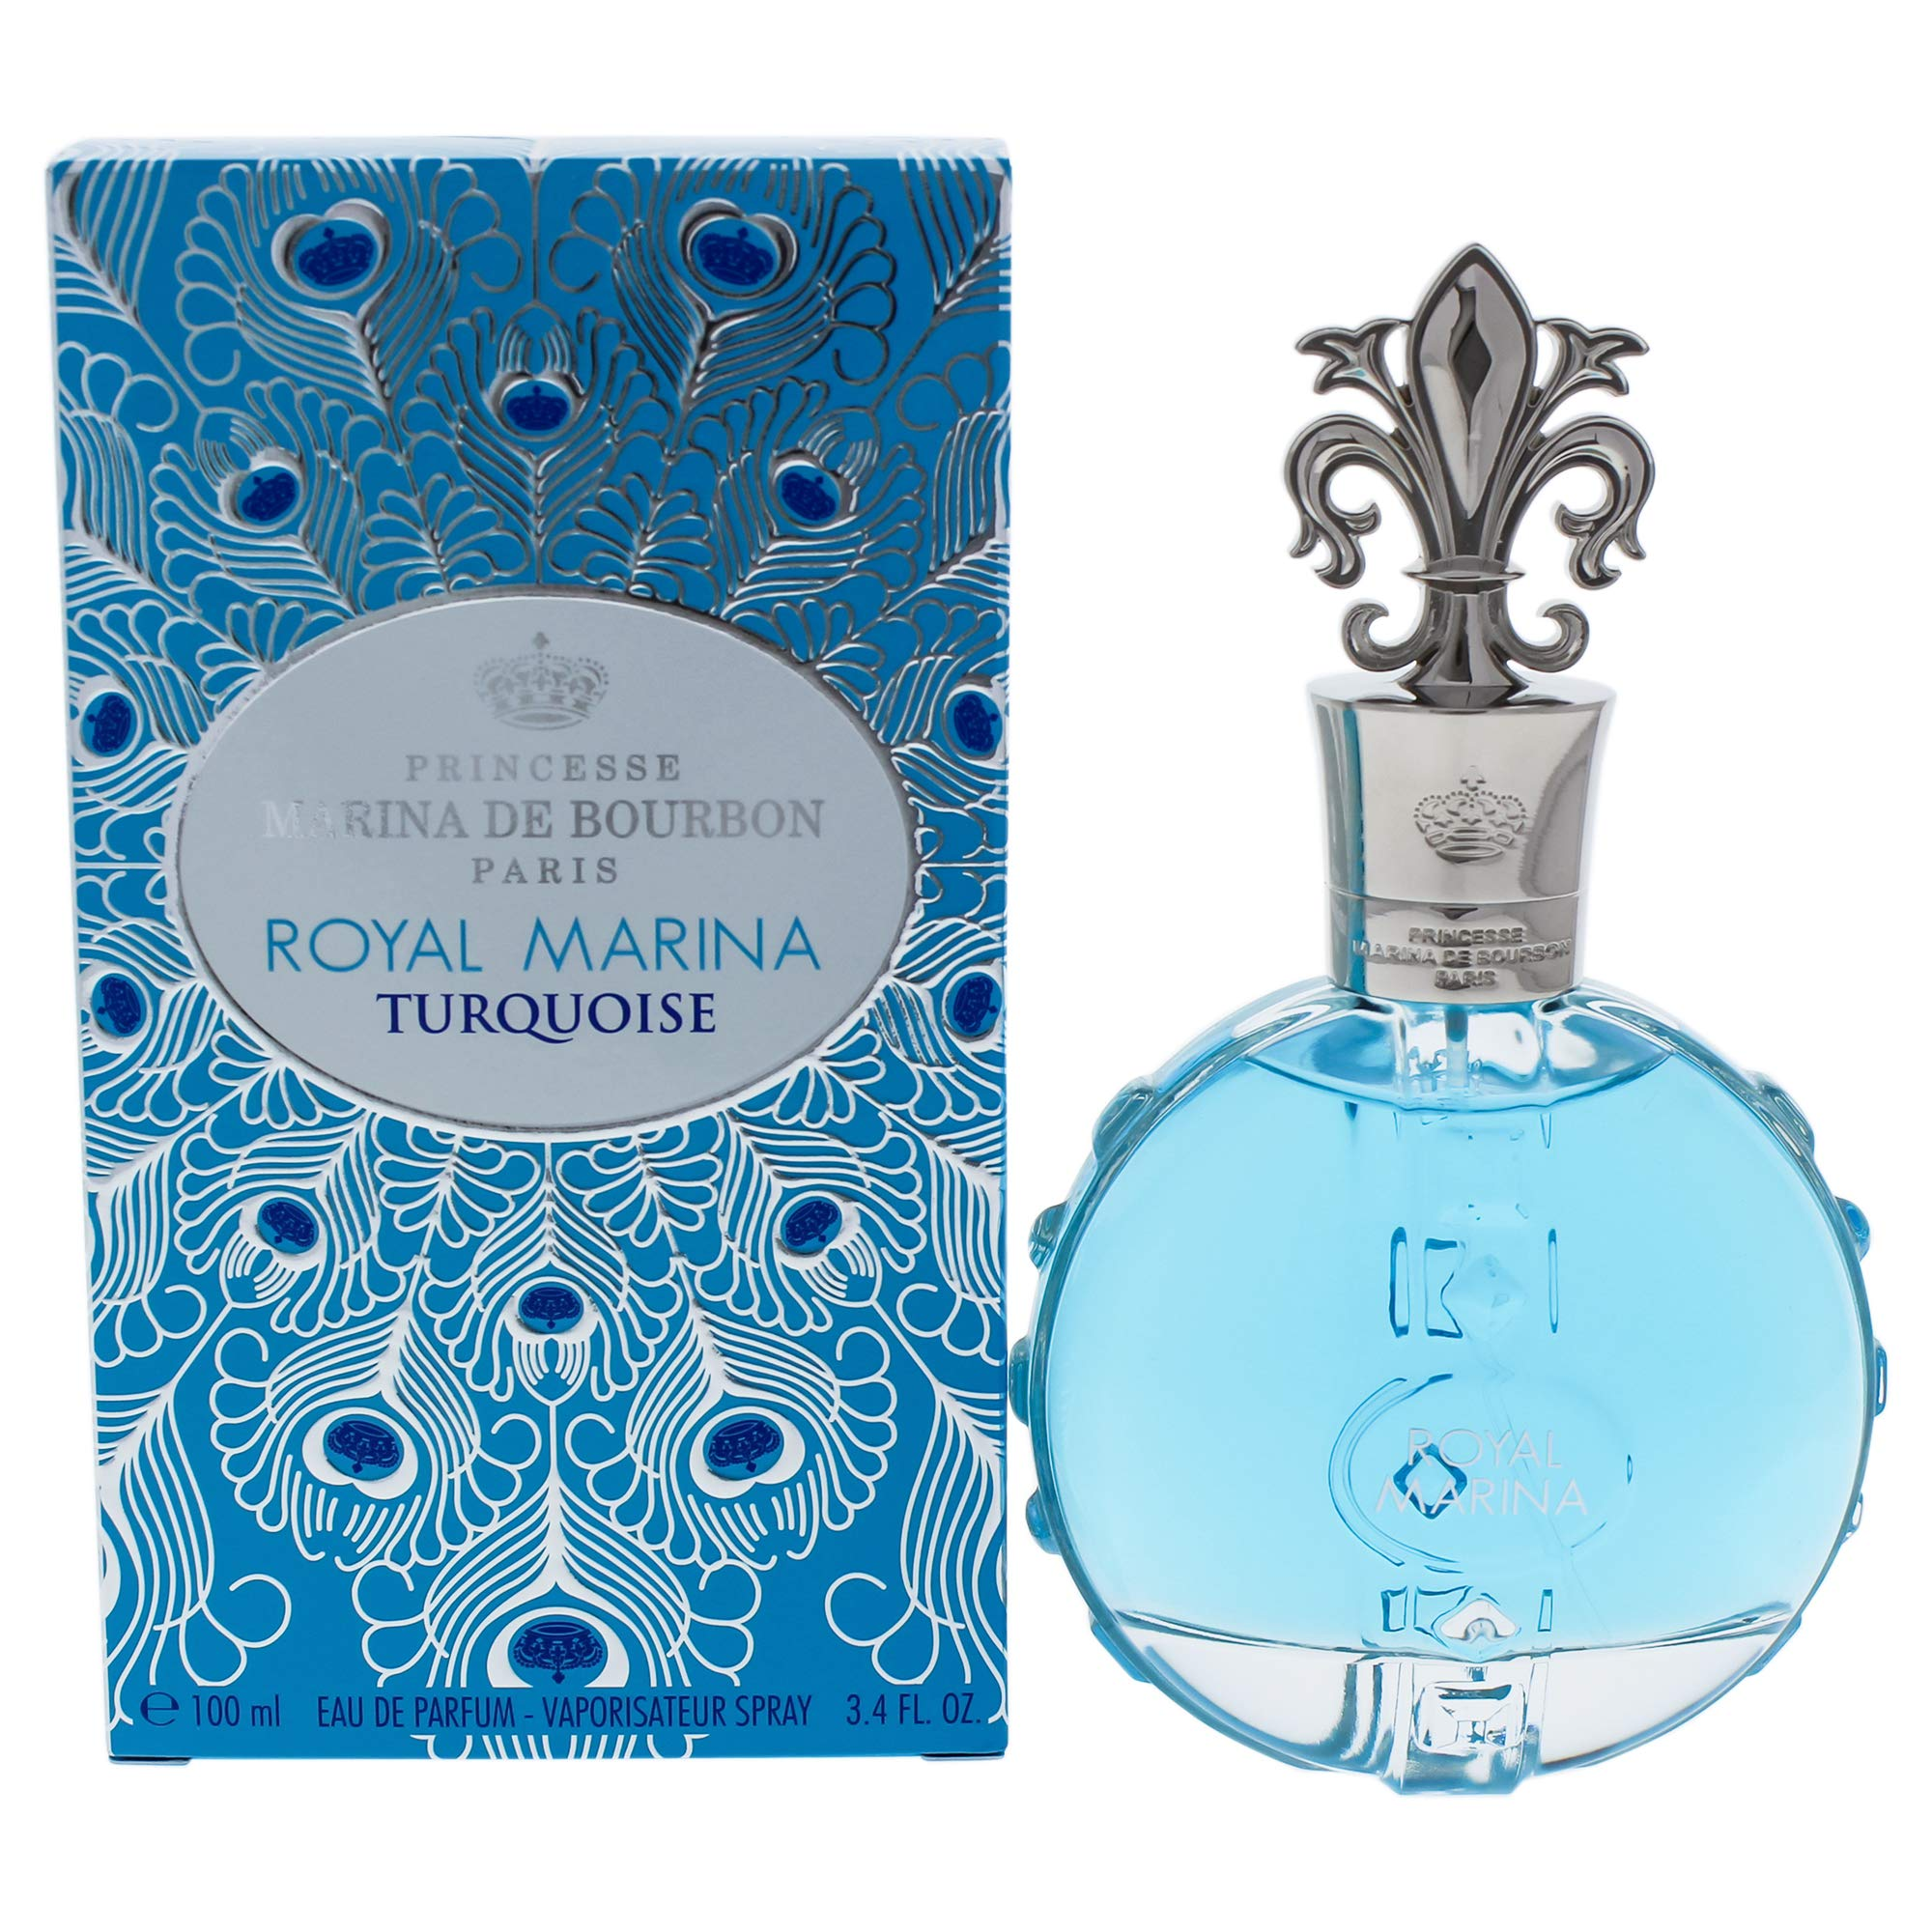 Royal Marina Turquoise by Princesse Marina de Bourbon | Eau de Parfum Spray | Fragrance for Women | Fresh Floral Scent with Notes of Green Apple and Lily of the Valley | 100 mL / 3.4 fl oz by Marina de Bourbon